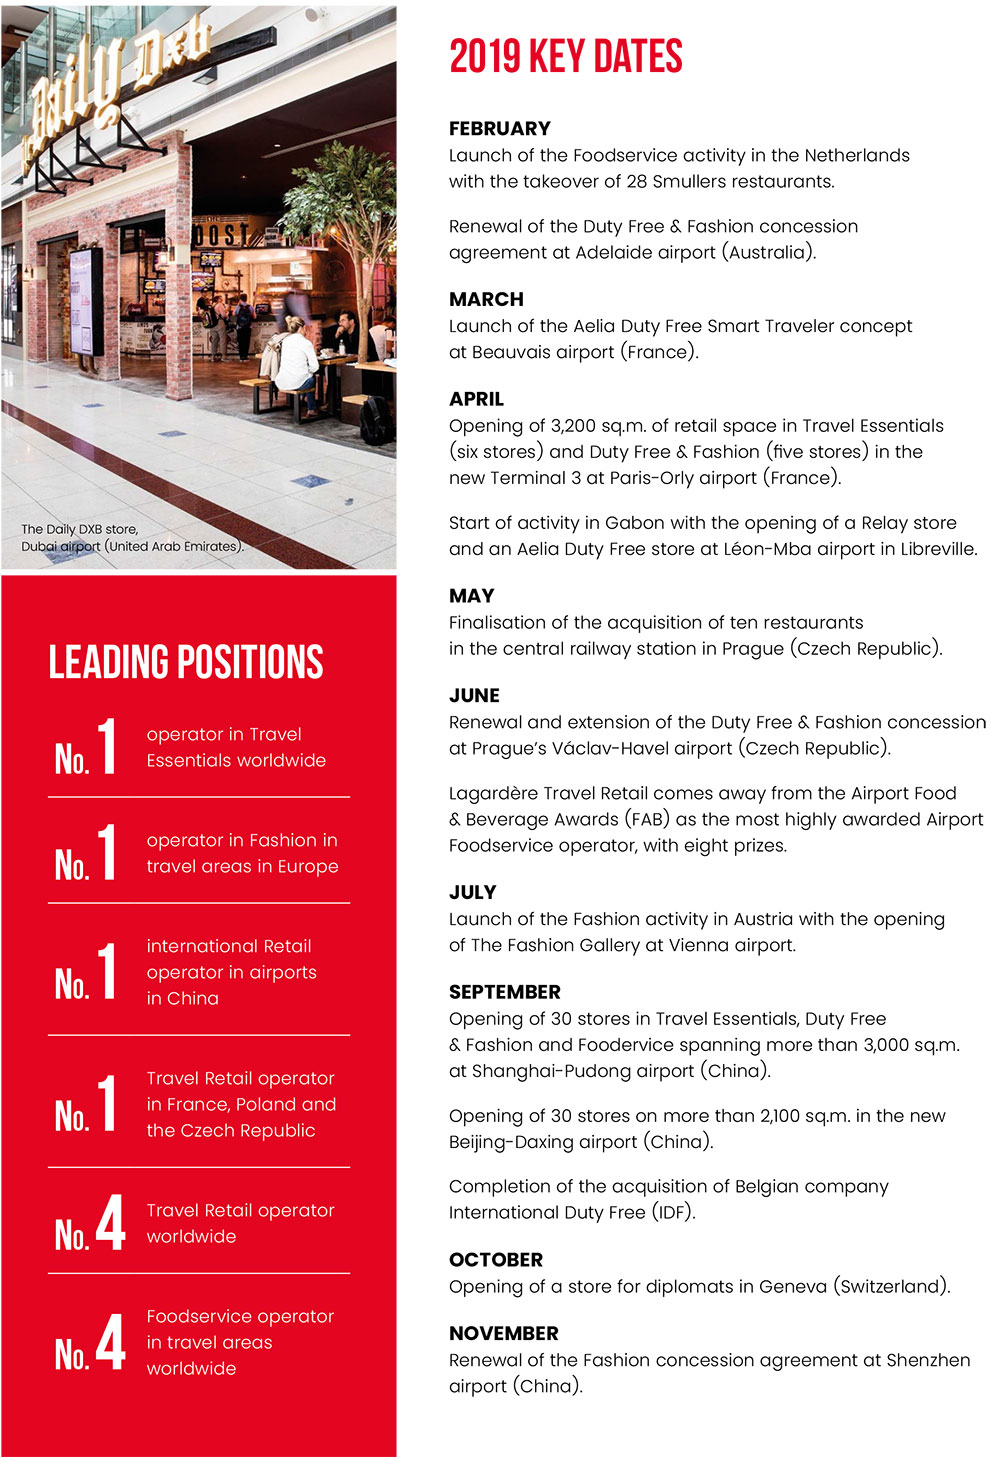 Lagardère Travel Retail: leading positions and key dates